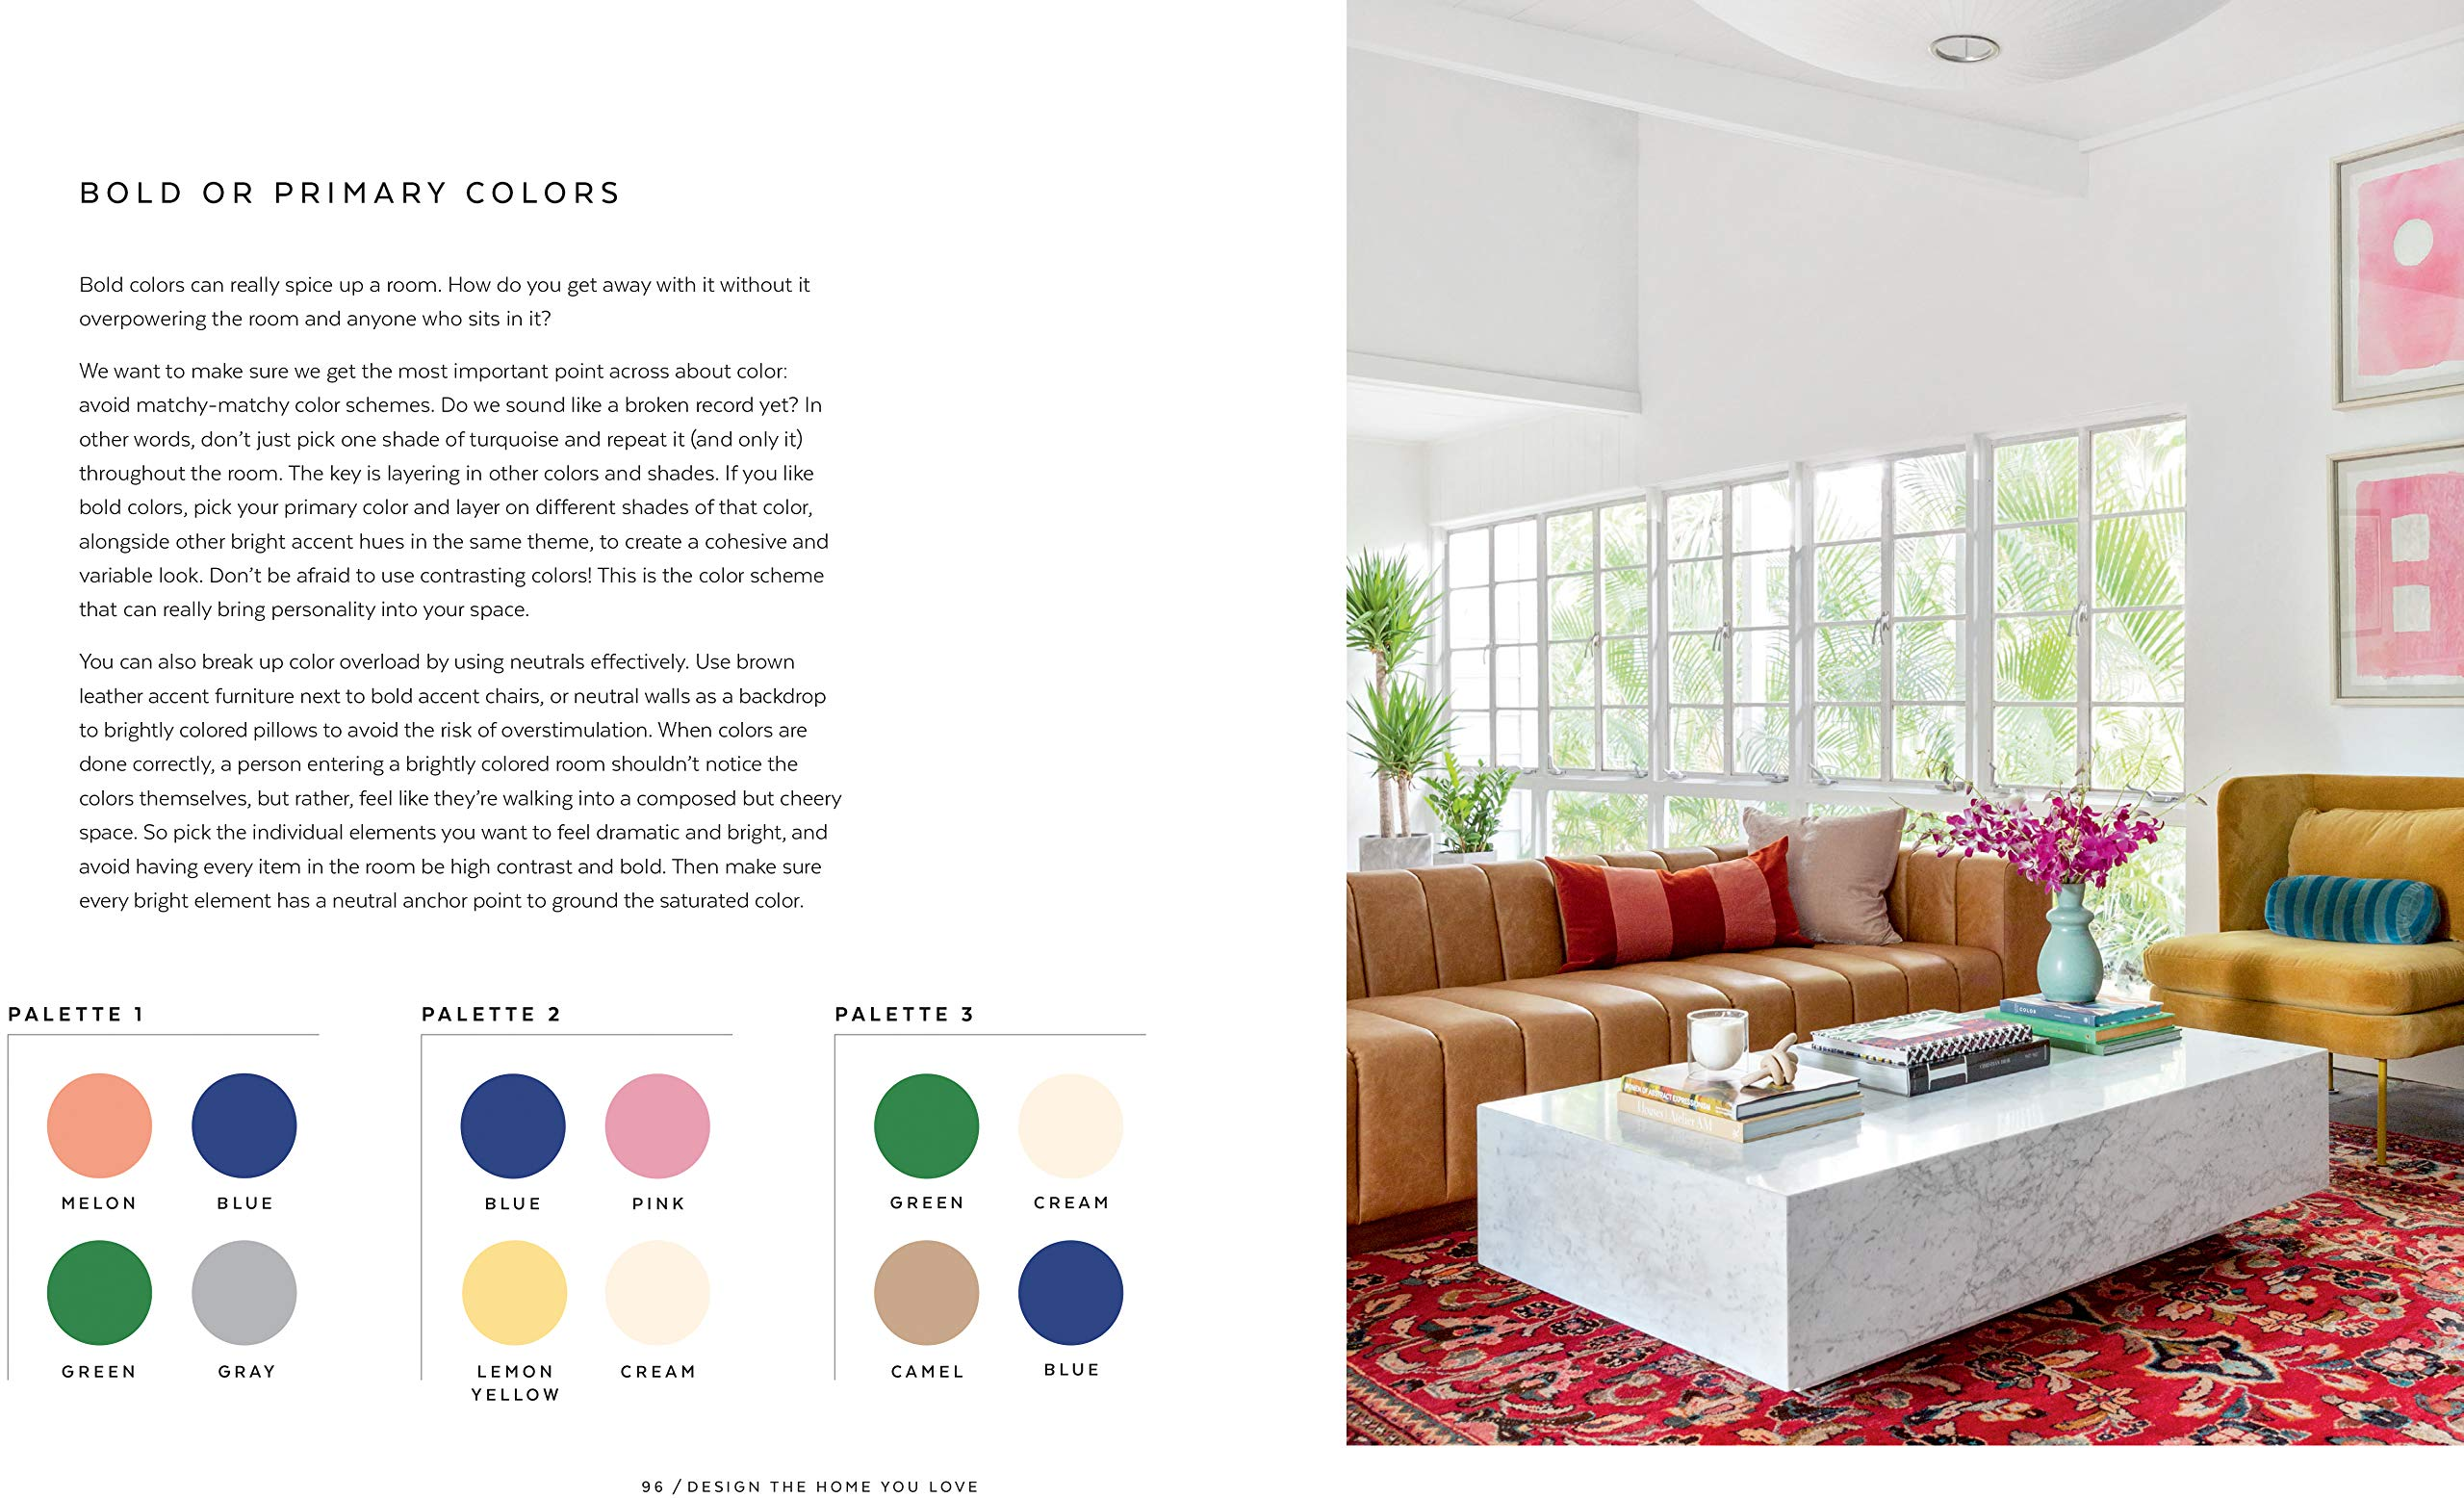 Design the Home You Love: Practical Styling Advice to Make the Most of Your Space (An Interior Design Book) by Havenly